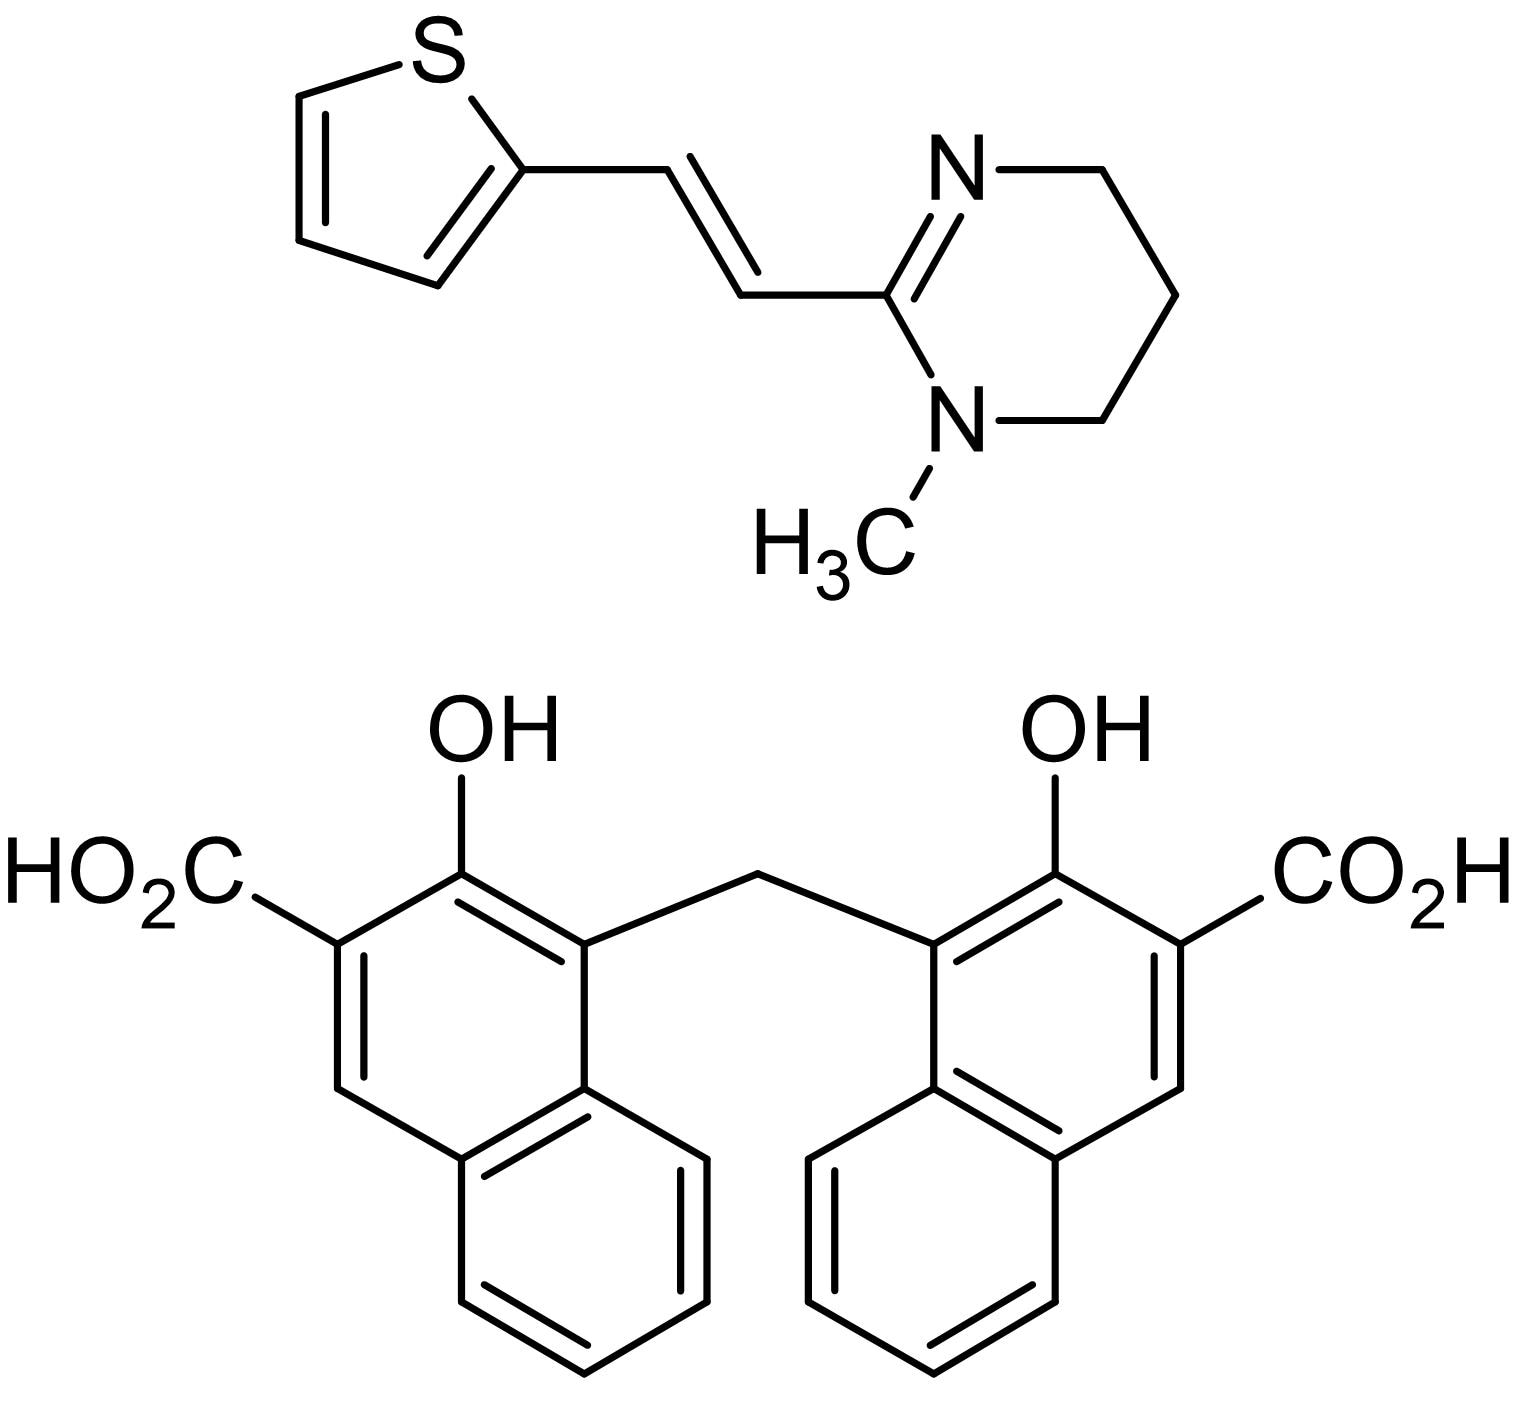 Chemical Structure - Pyrantel pamoate, antiparasitic agent (ab143443)